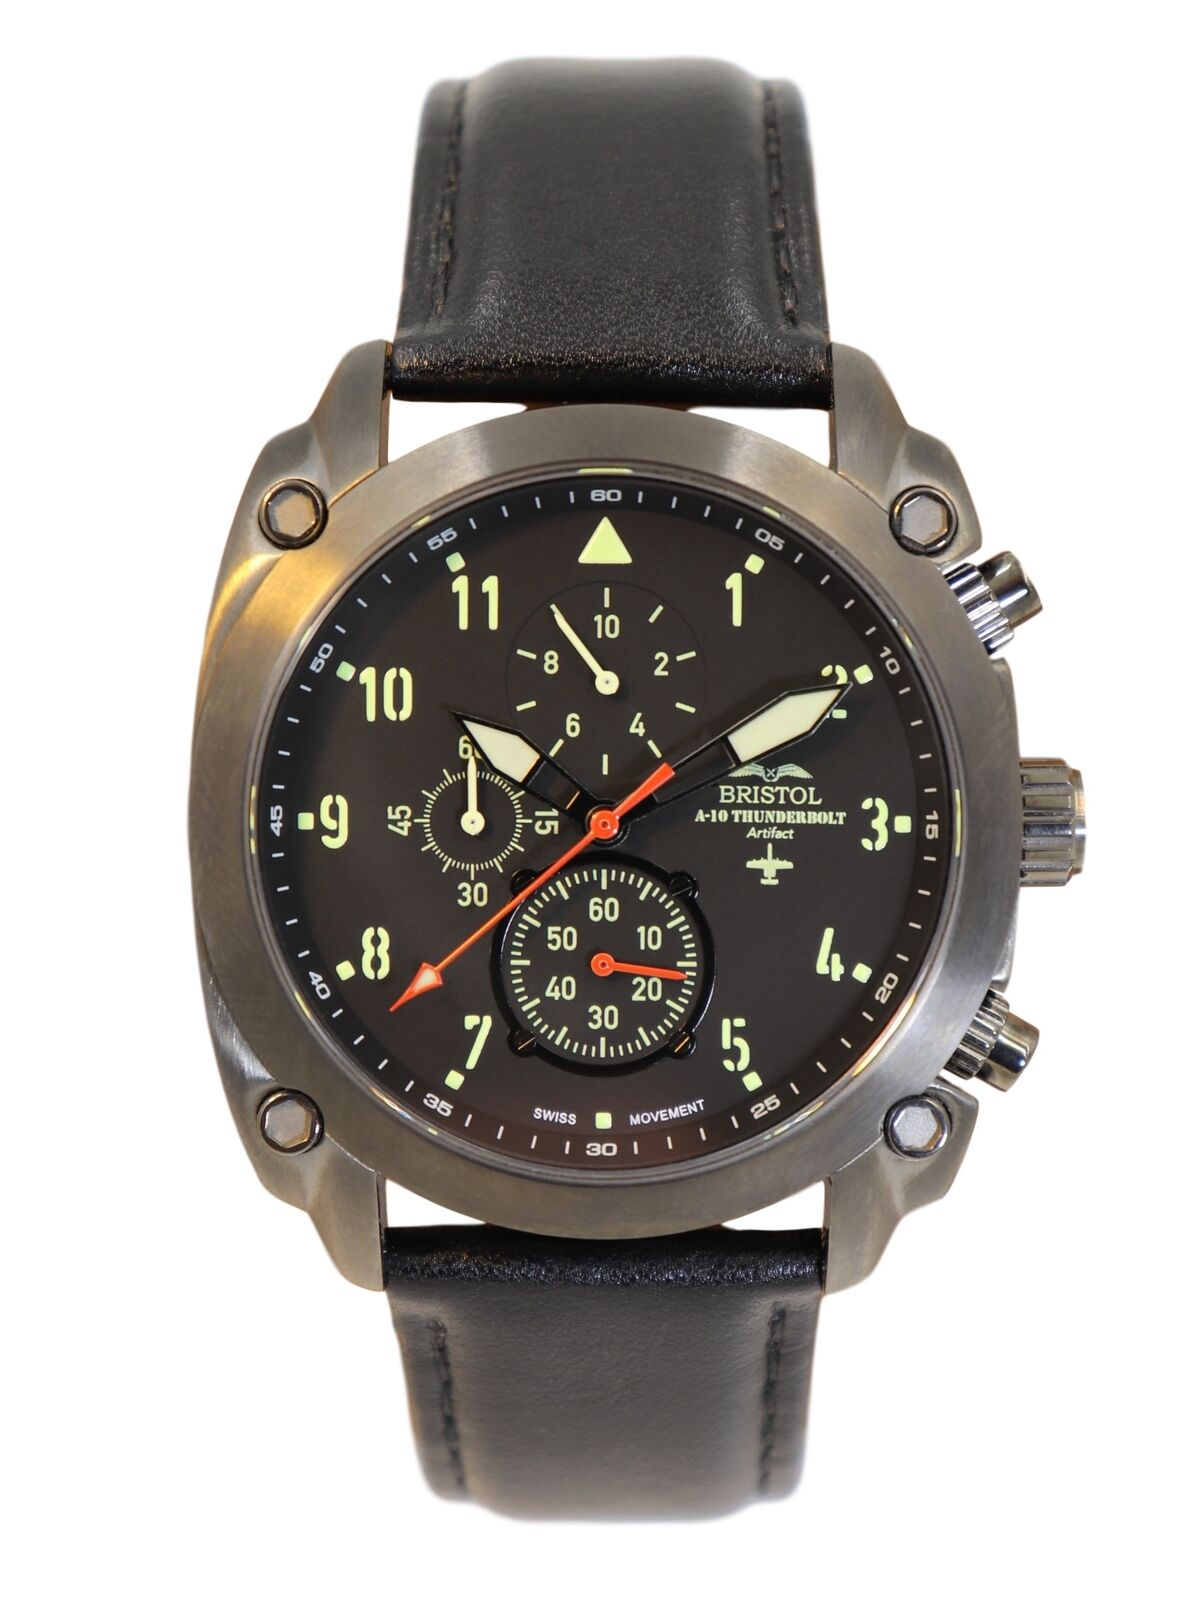 A10 Aviation Watch Made With Real A10 Metal Plus Pilot Functions